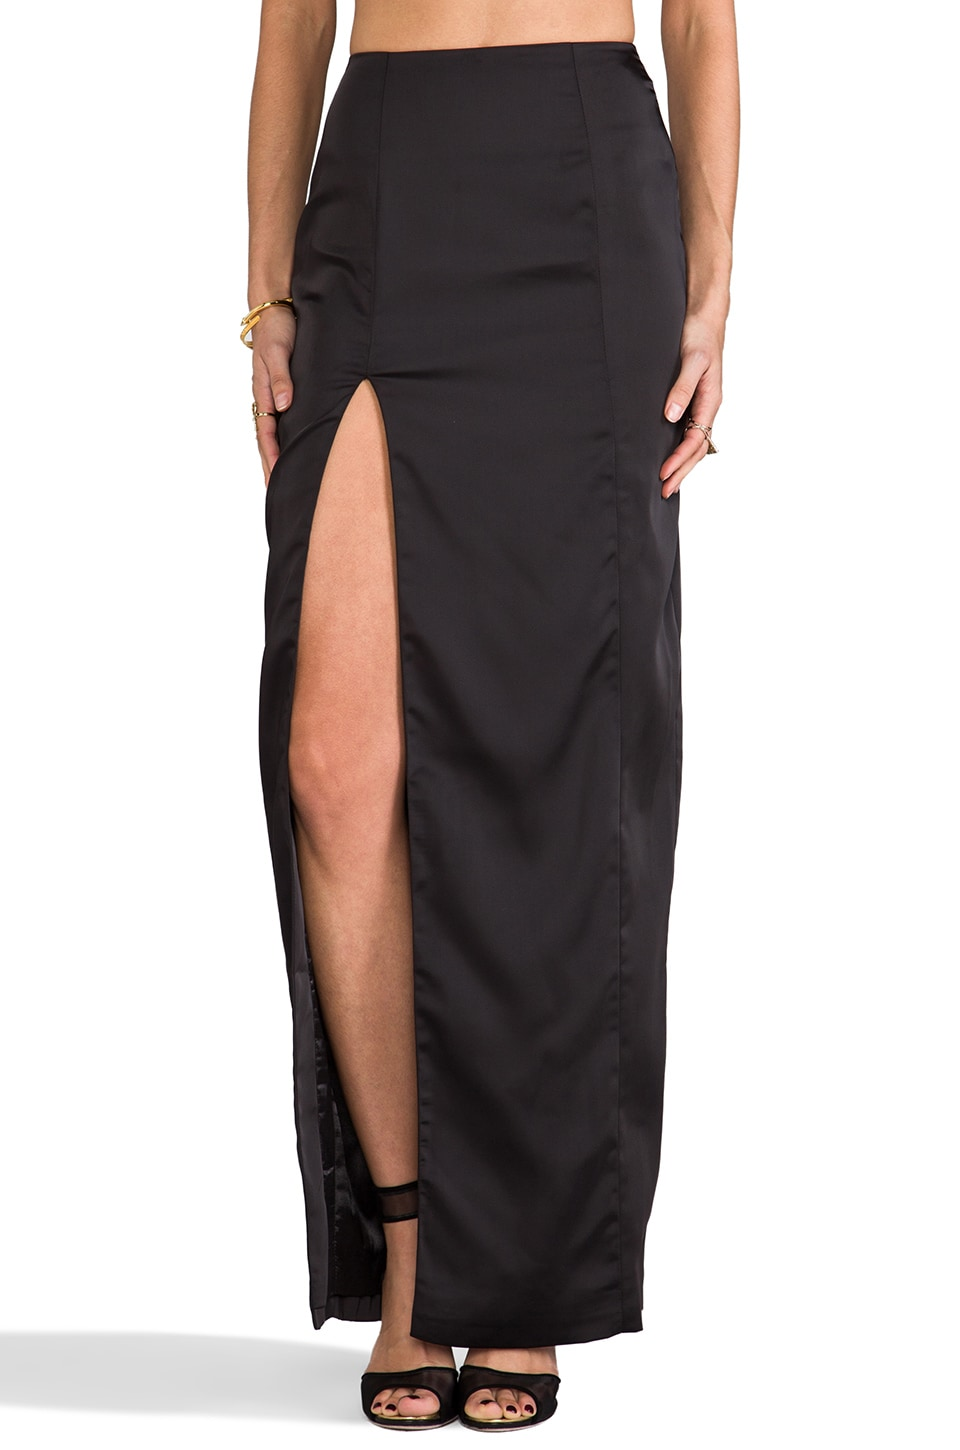 AQ/AQ Kamwoo Maxi Skirt in Black